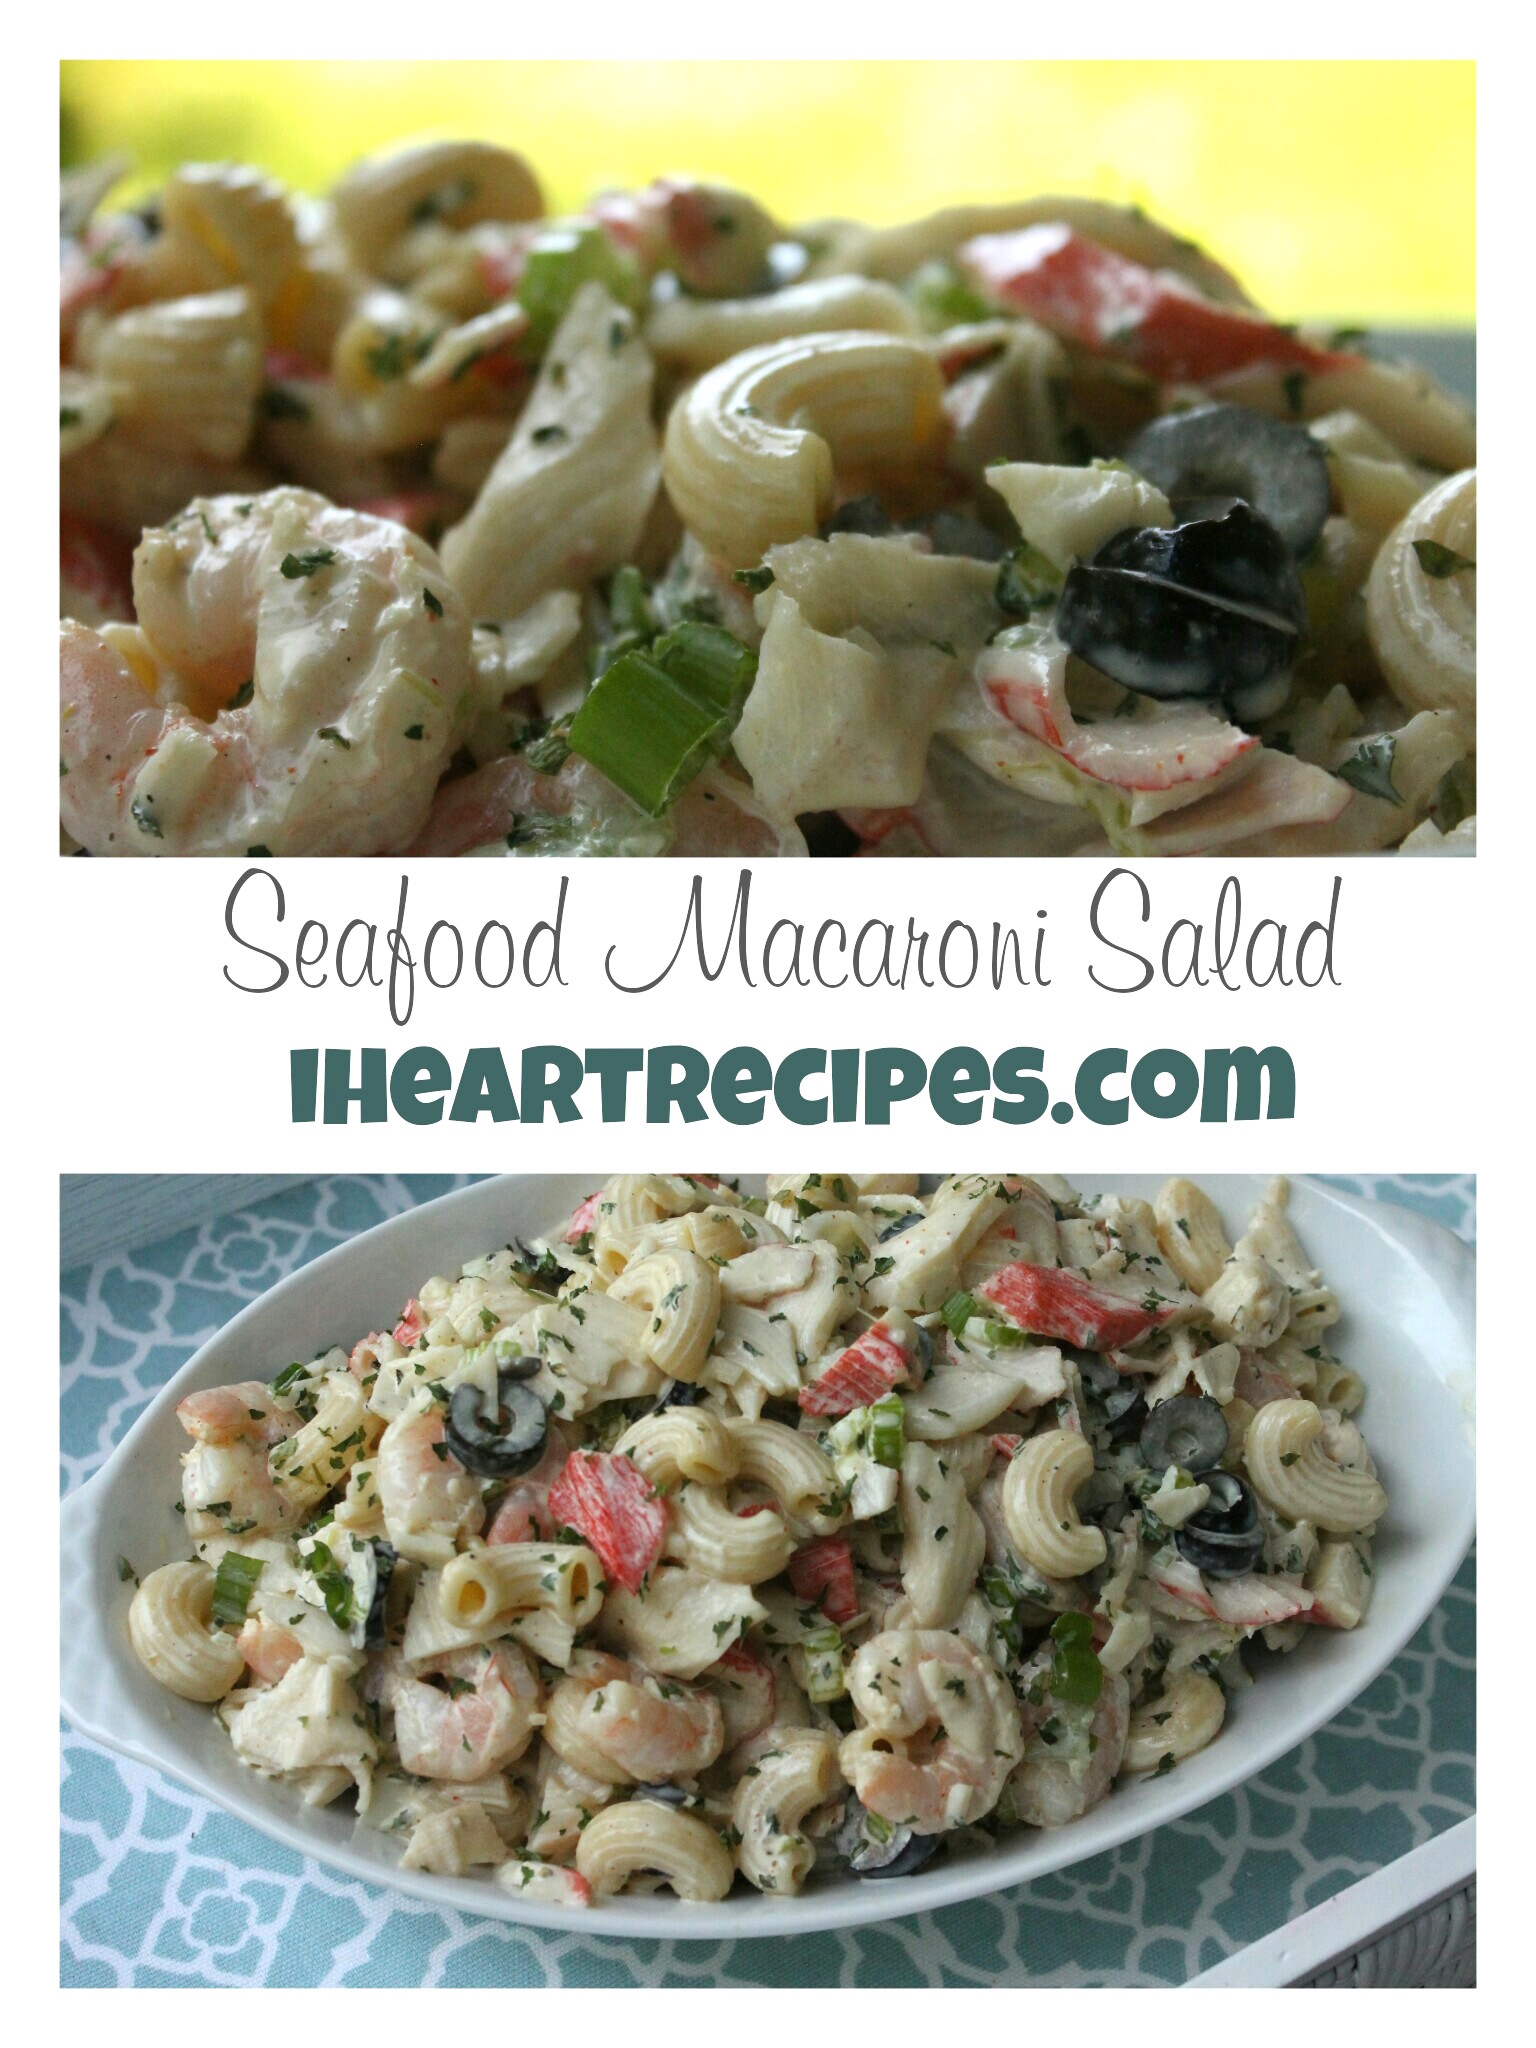 This seafood macaroni salad is creamy and hearty, best served cold!